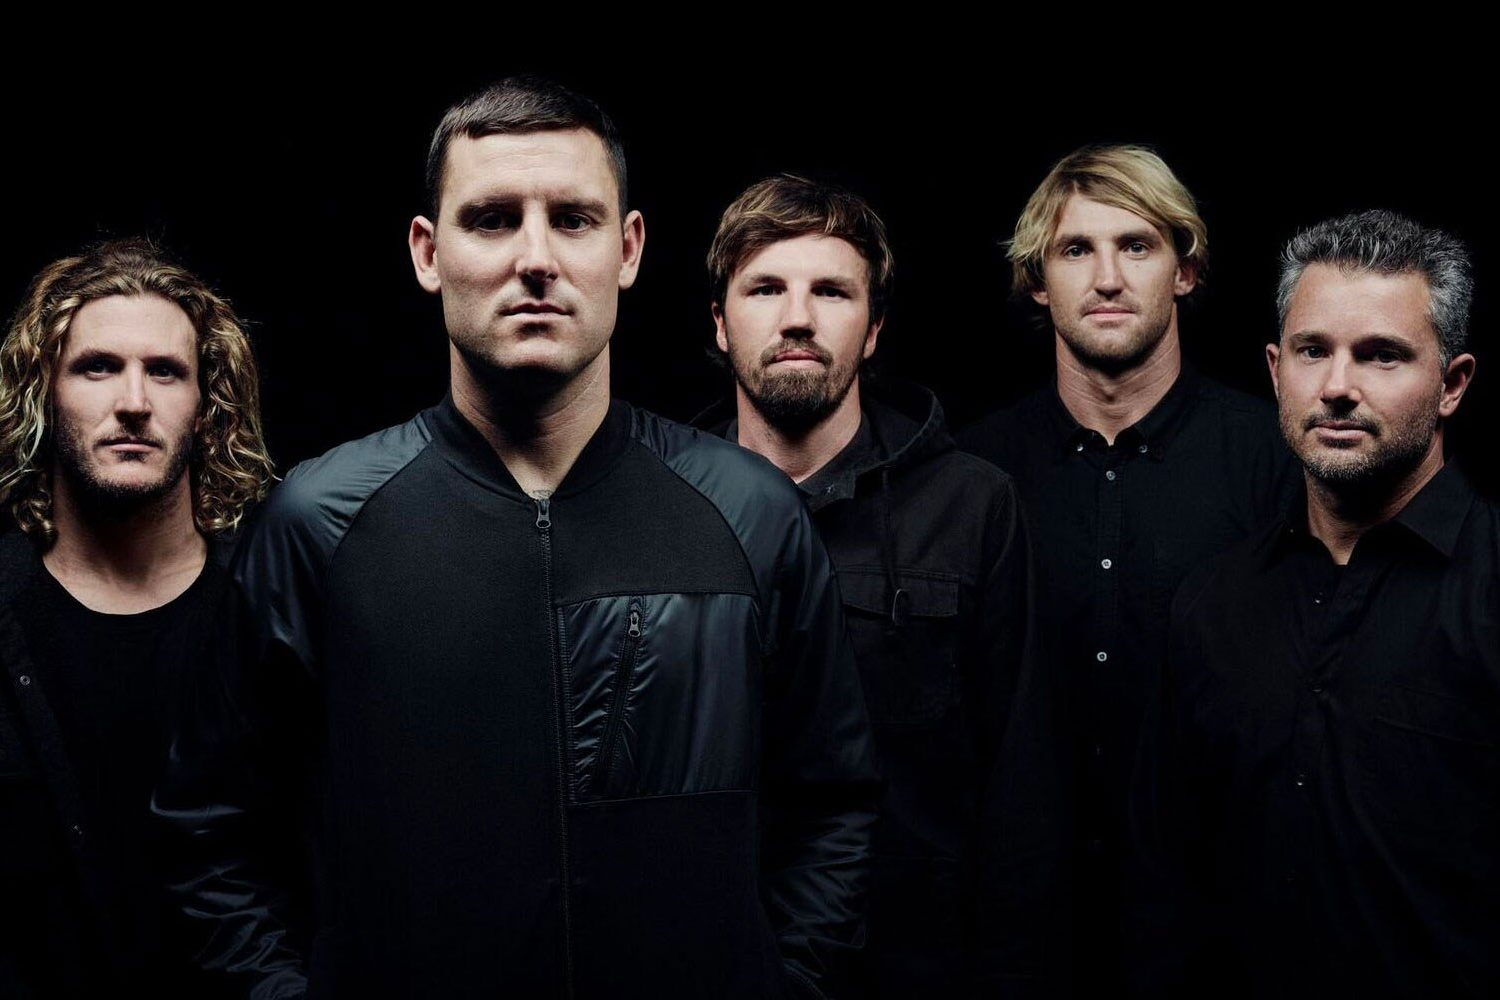 Parkway Drive are the third headliner of Bloodstock festival